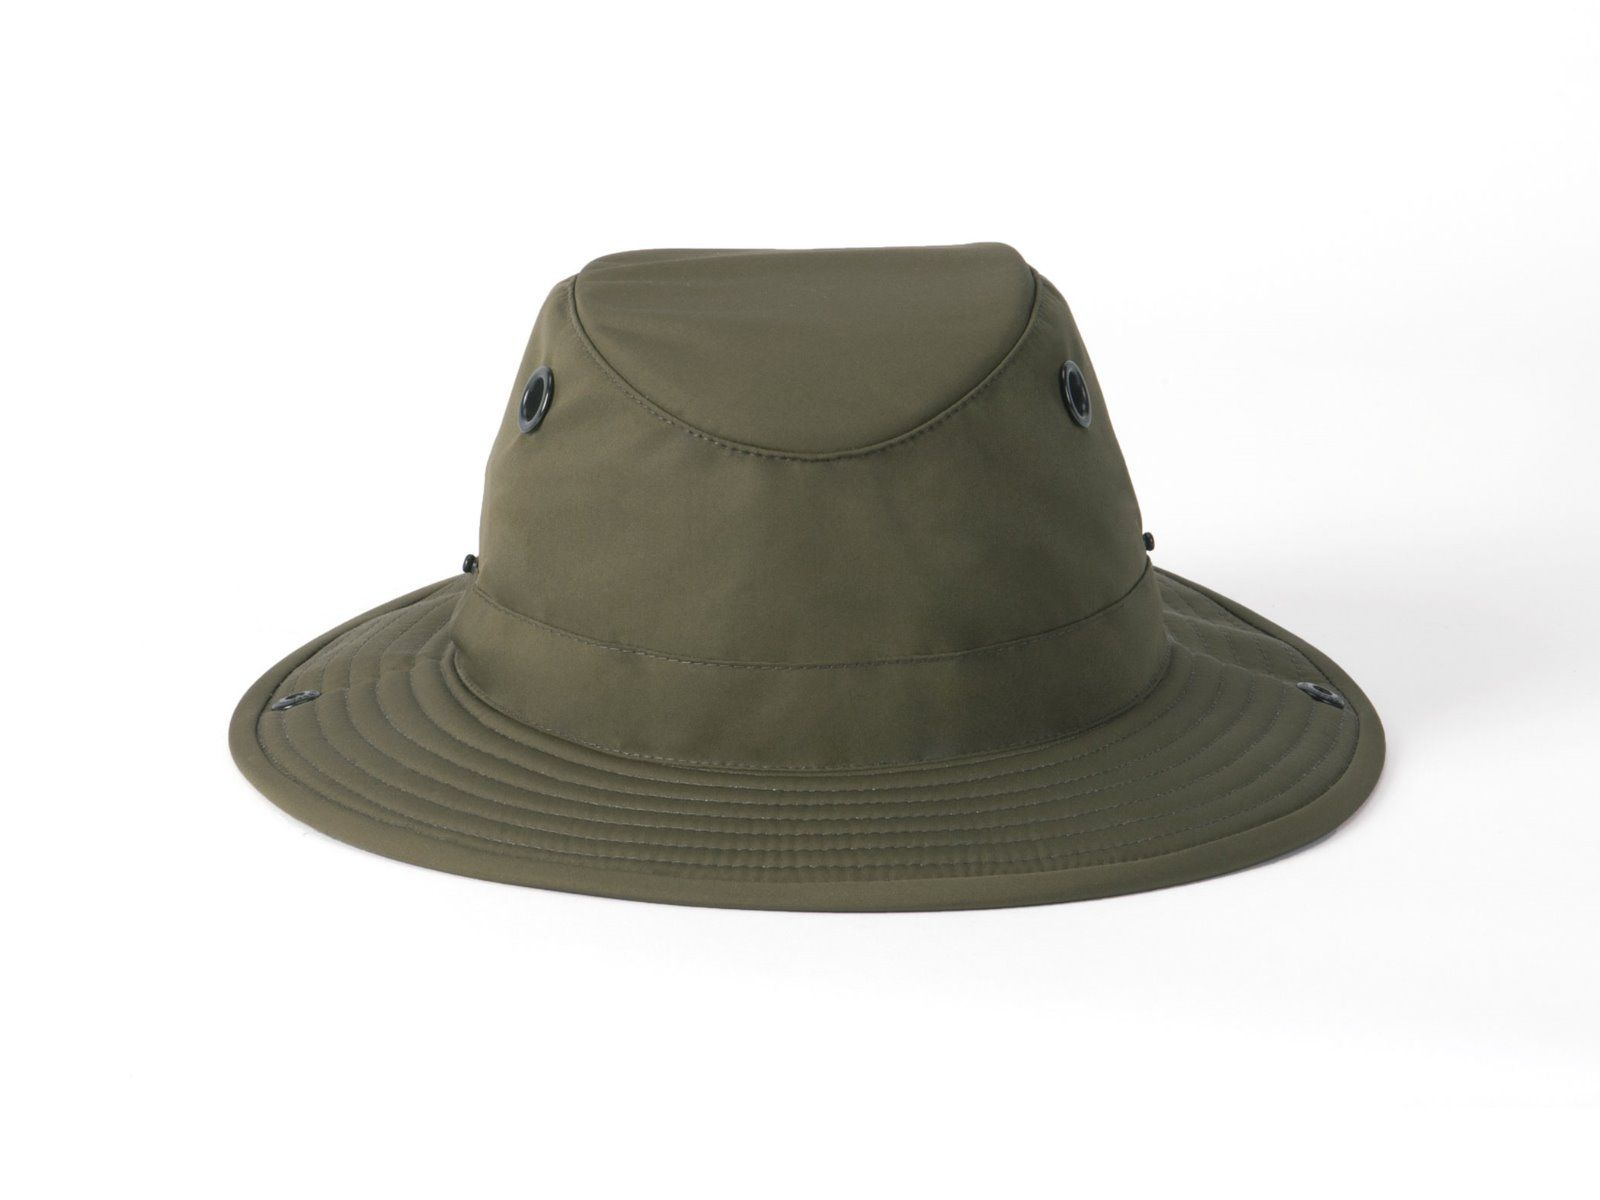 Tilley TWS1 Paddler's Hat - Unisex